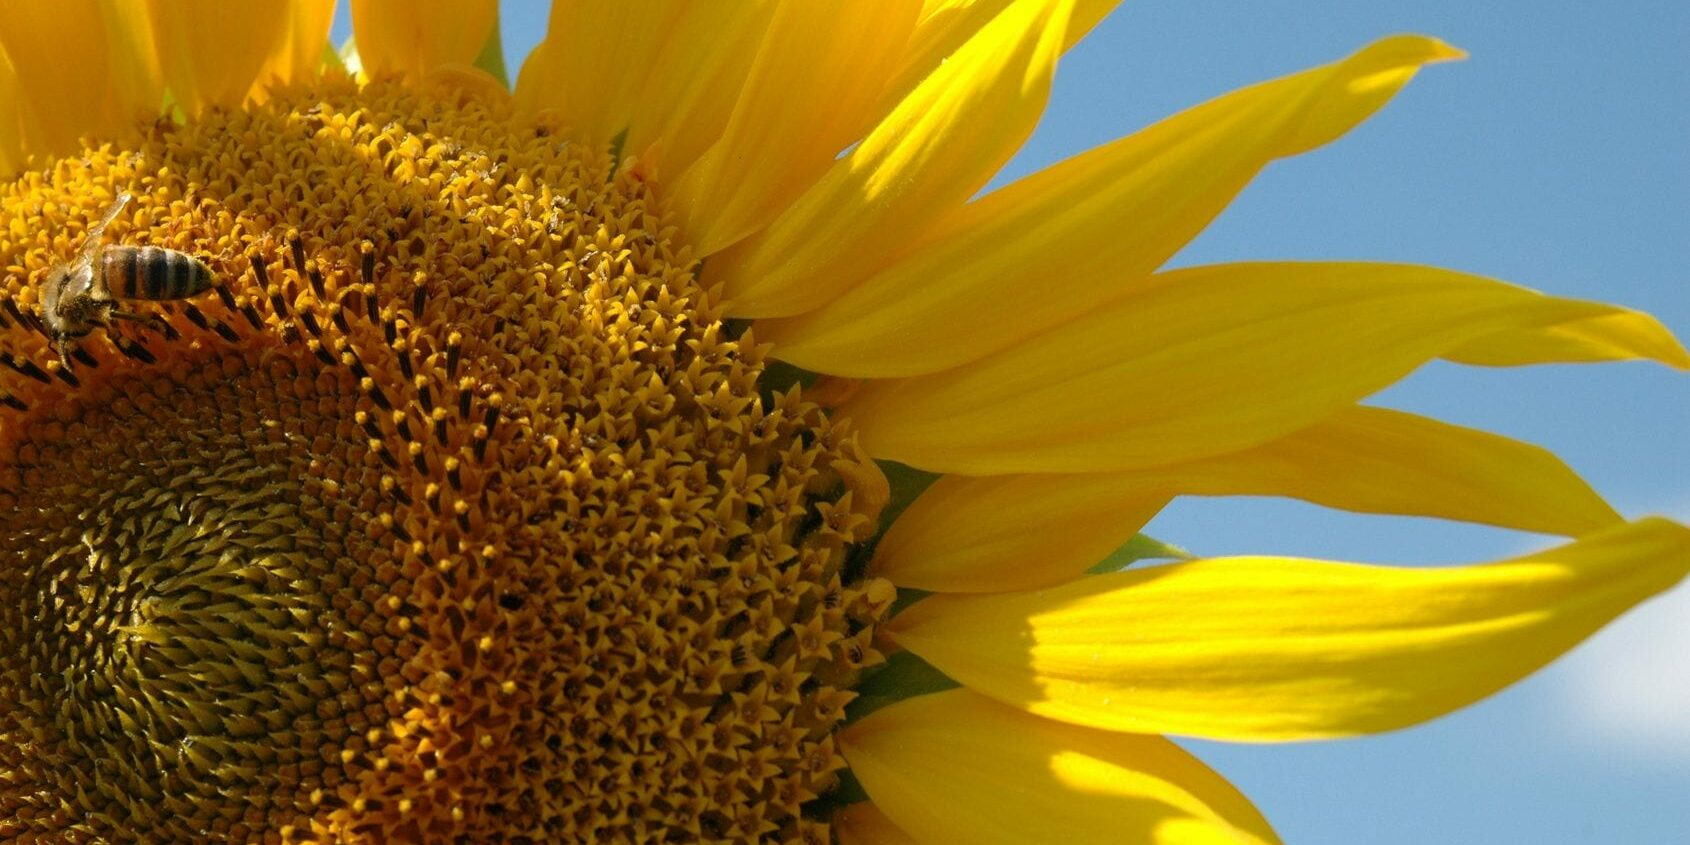 Bright Sunflower On A Sunny Day